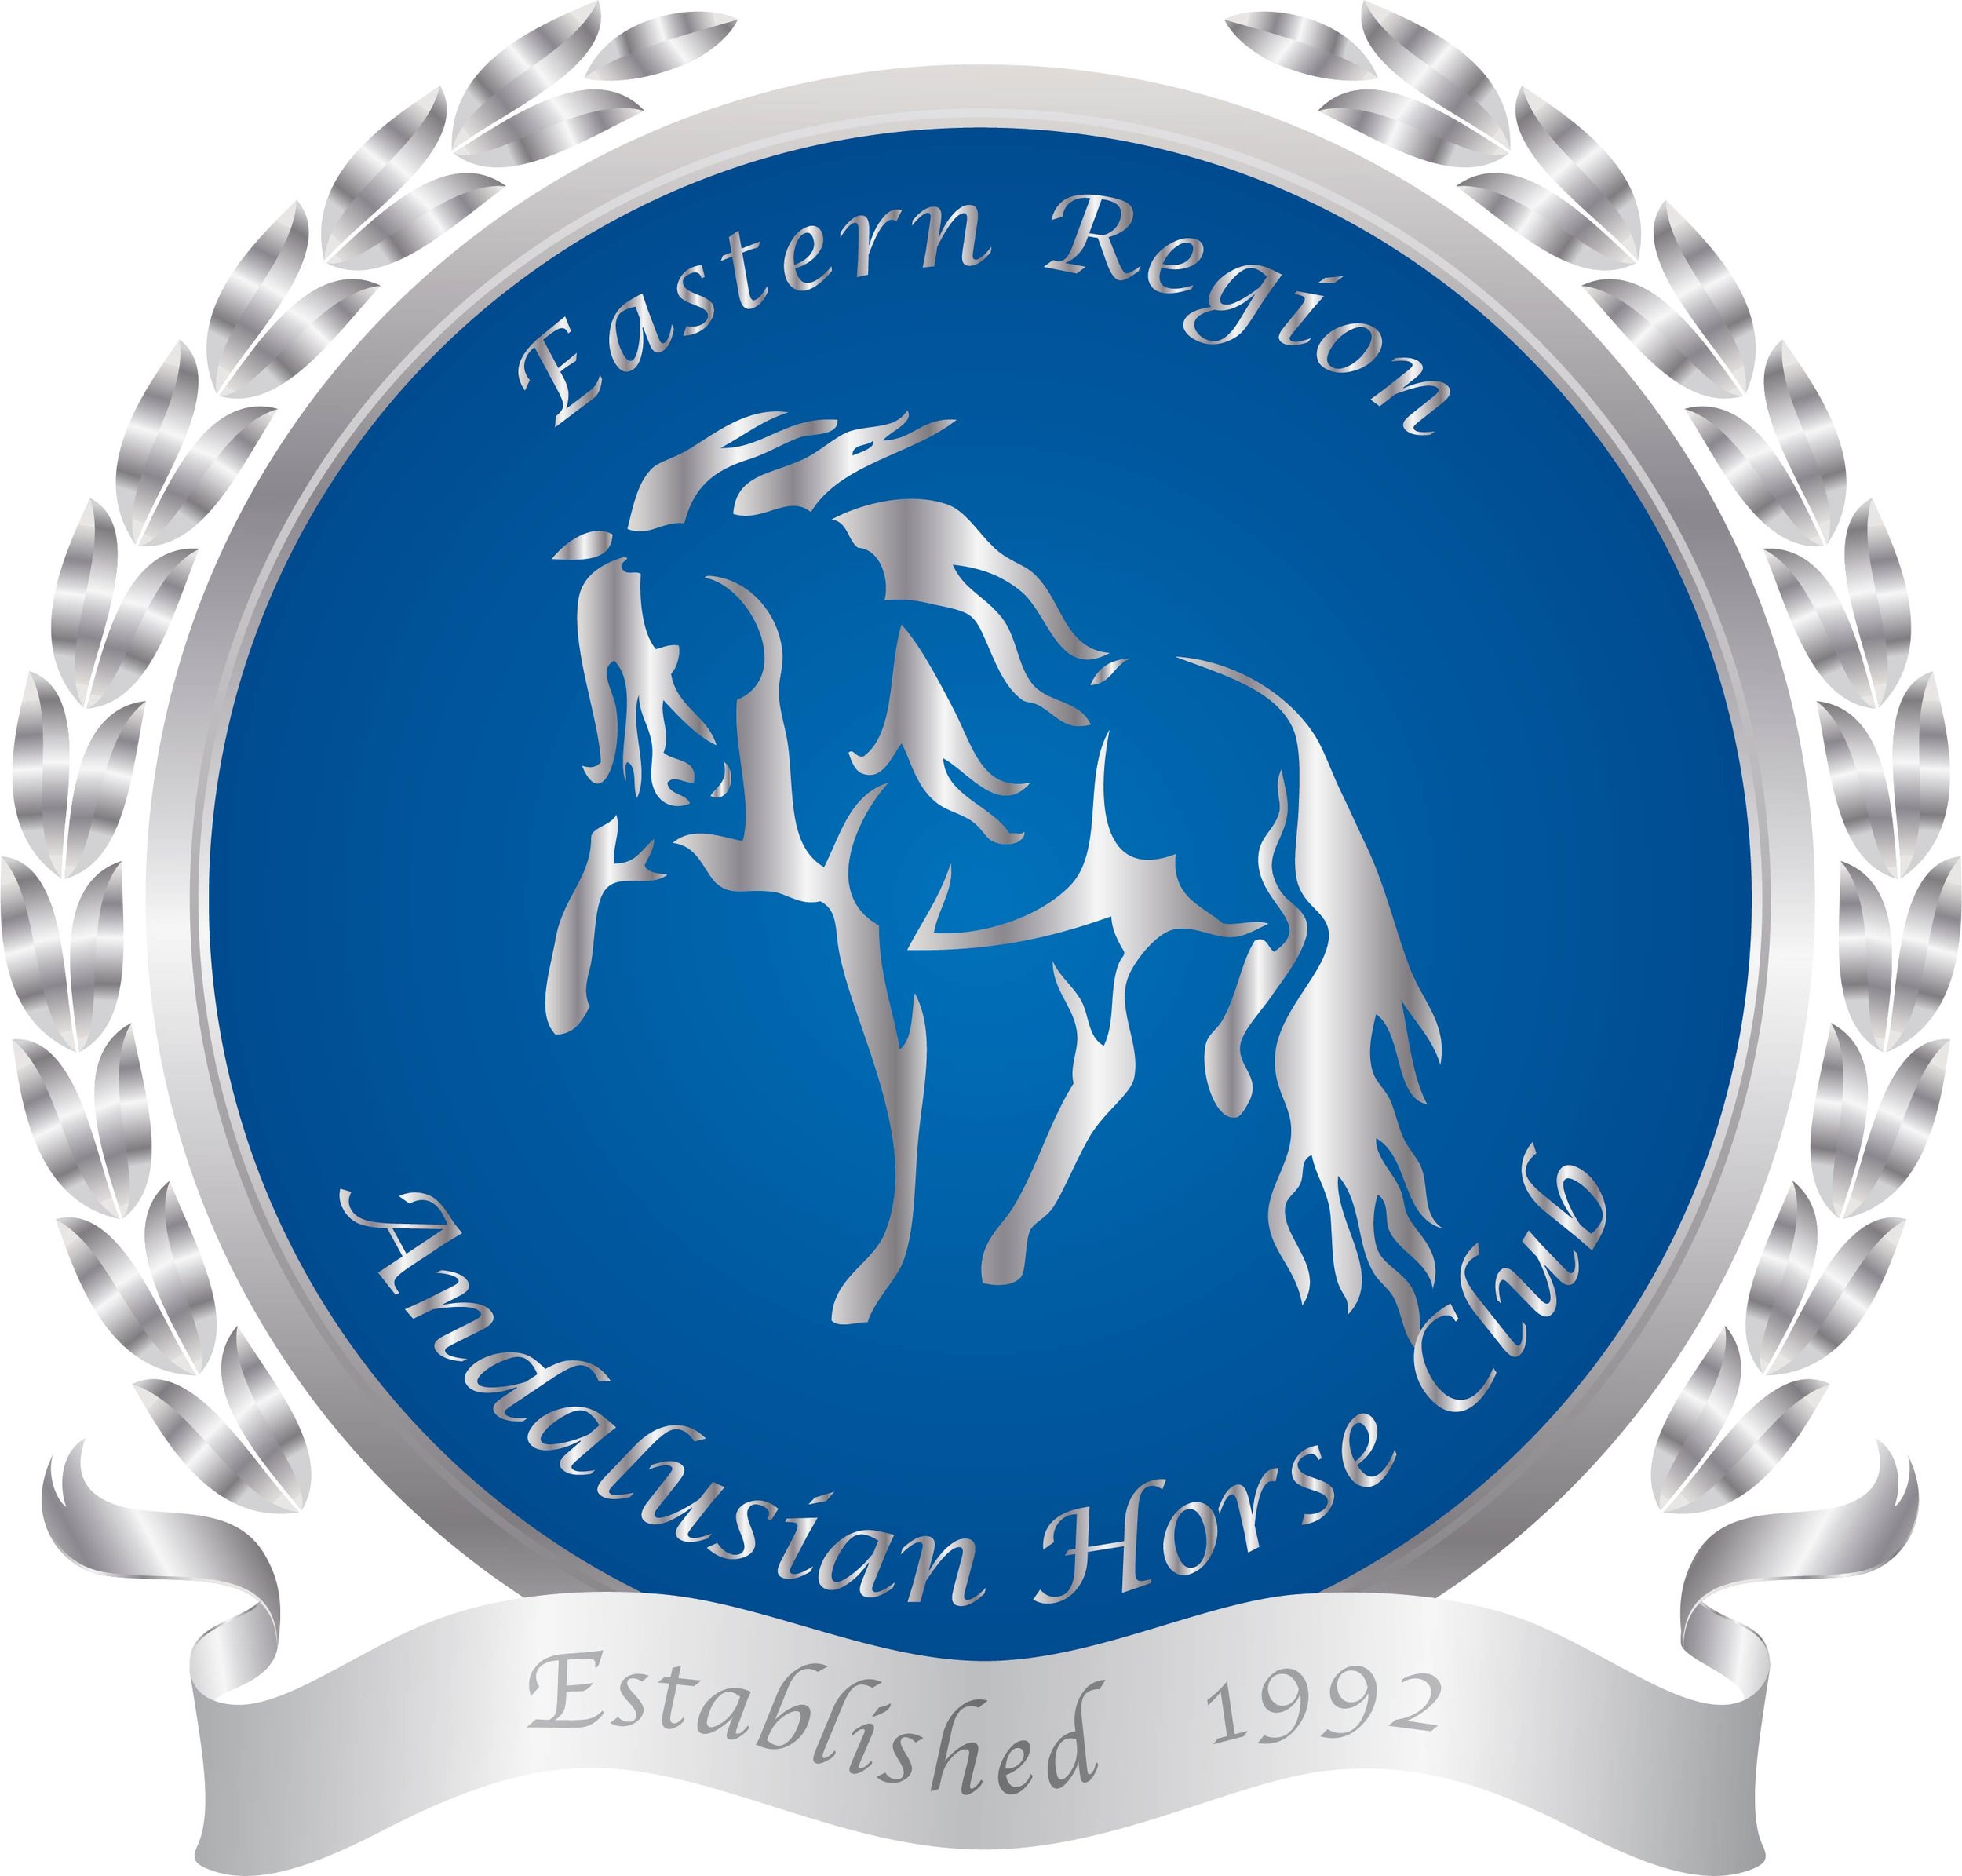 ERAHC - Eastern Region Andalusian Horse Club  was formed in 1992 to promote the Andalusian and Lusitano breeds. ERAHC first offered Working Equitation classes at their show in 2008, and has stayed current with the evolution of the sport in the U.S. ERAHC is a group member of the Confederation and held two B-rated shows in 2018.